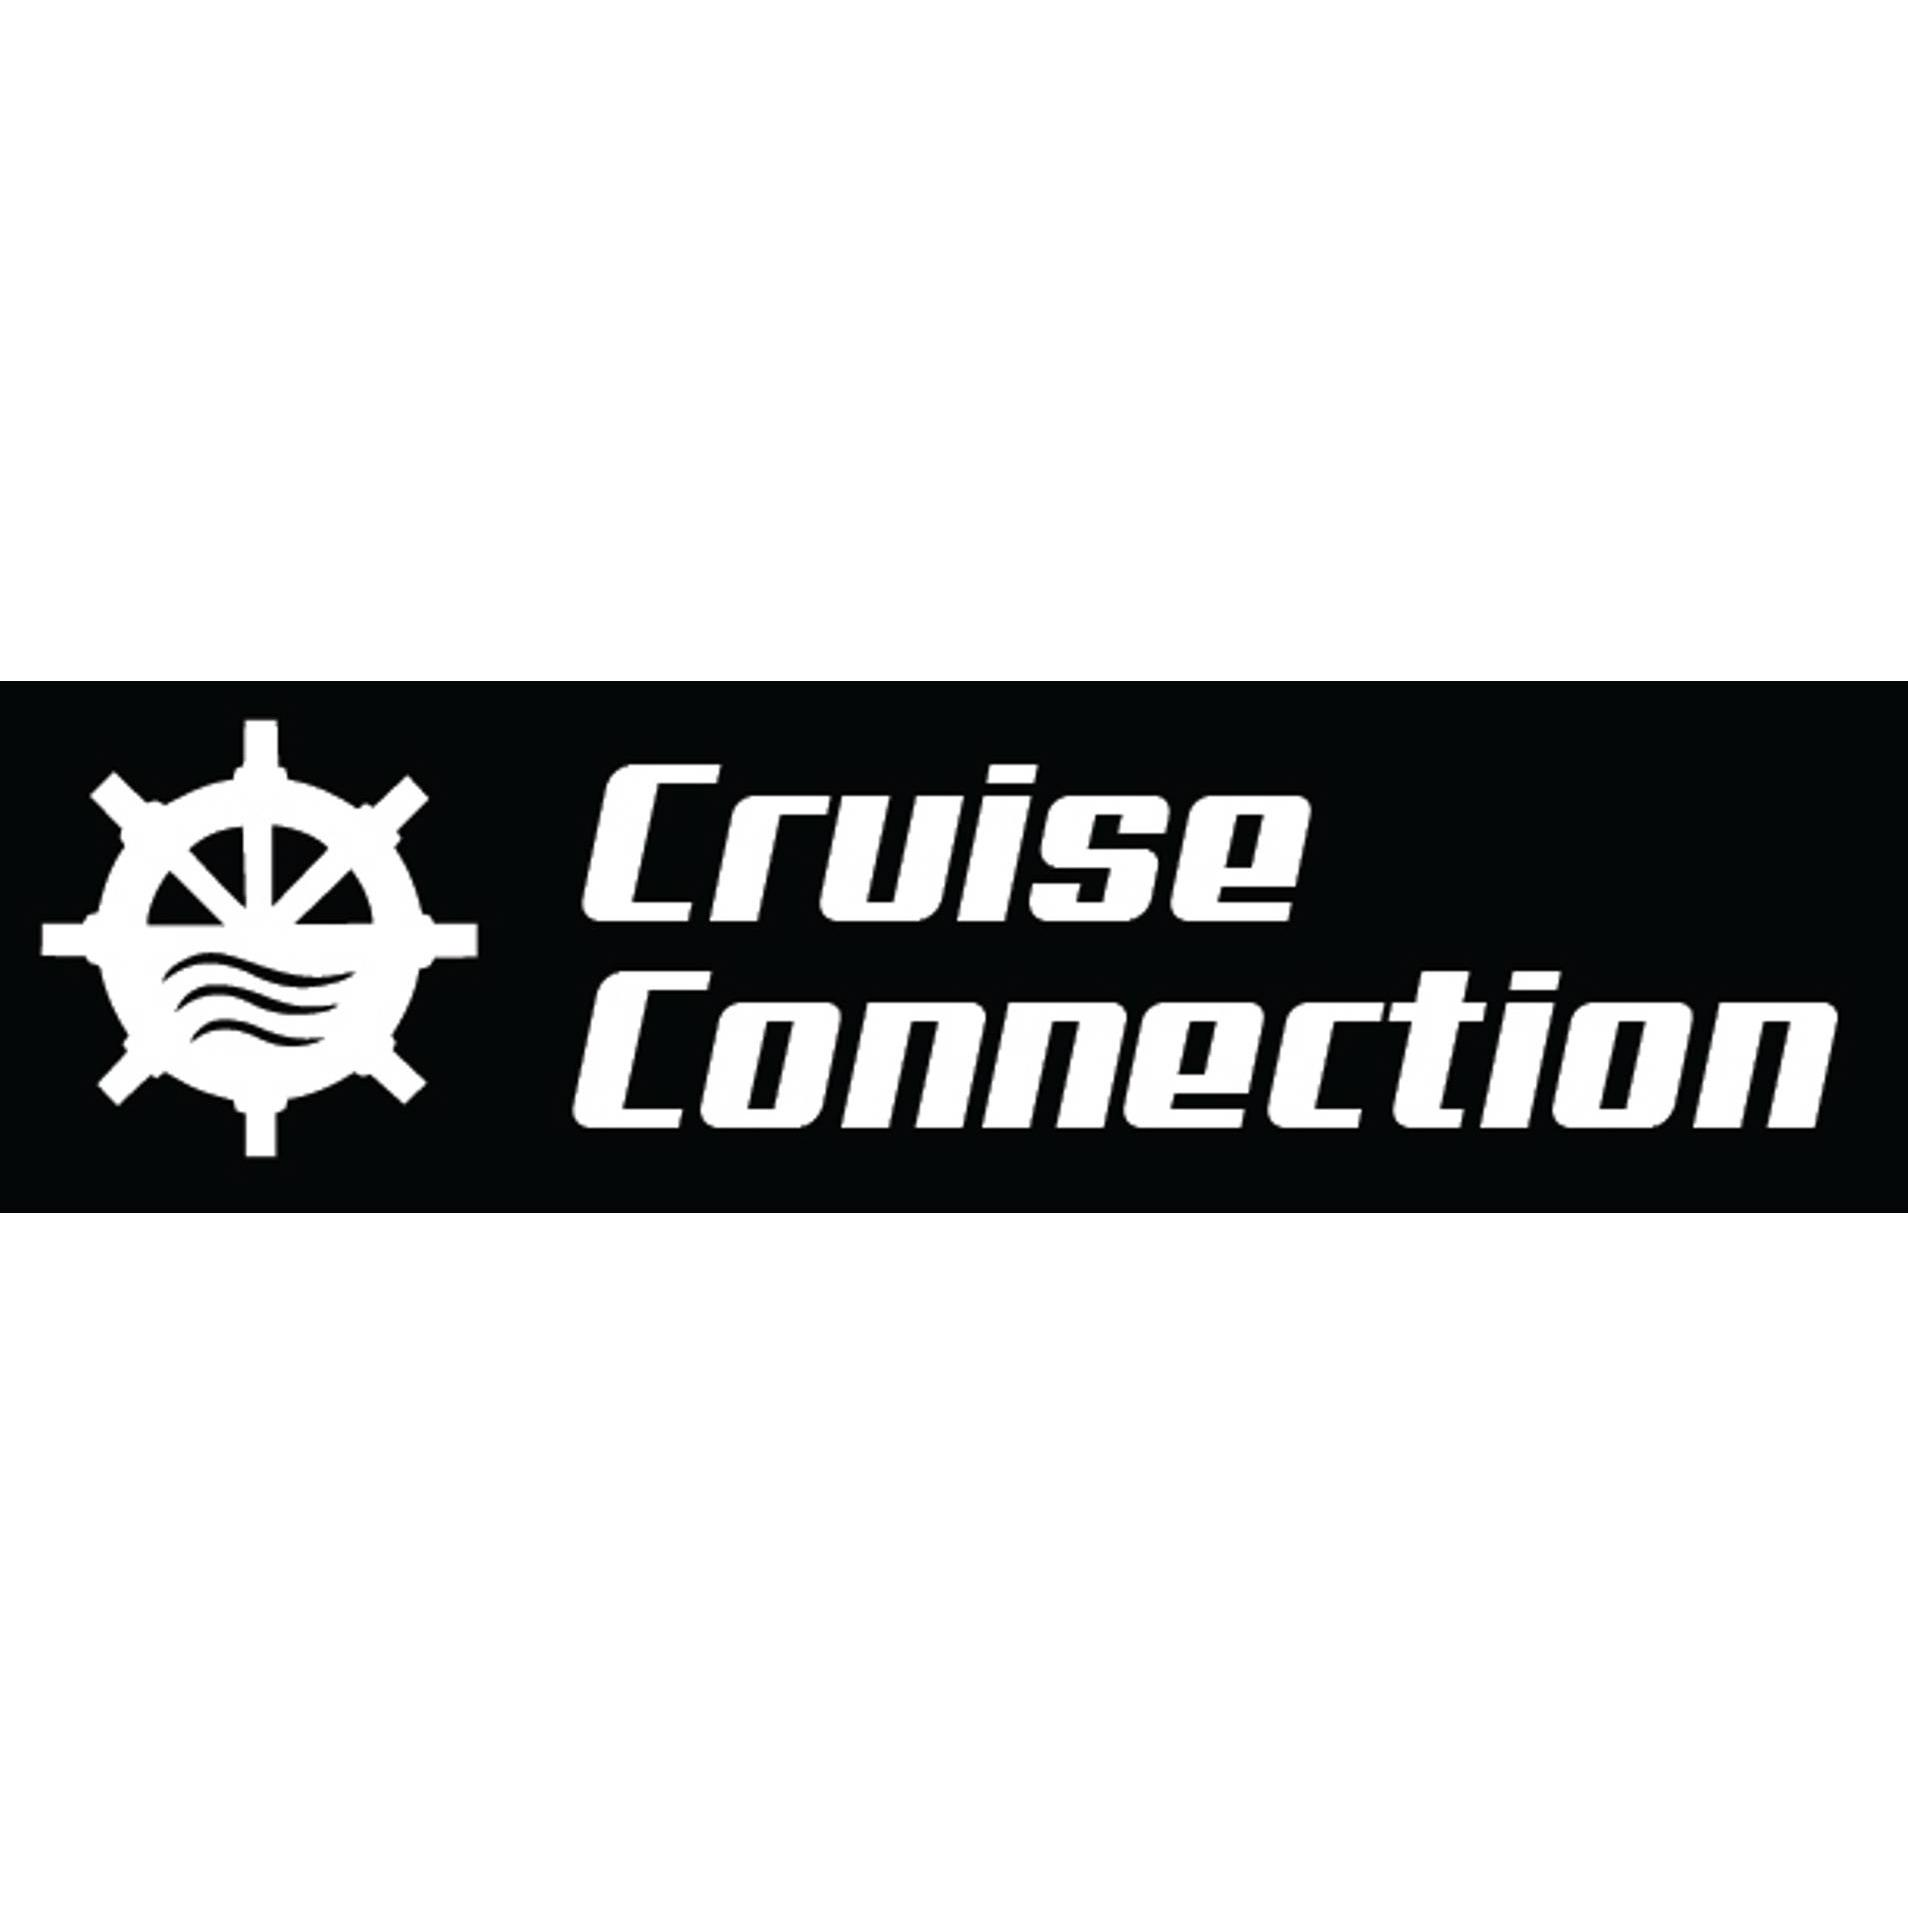 Cruise Connection